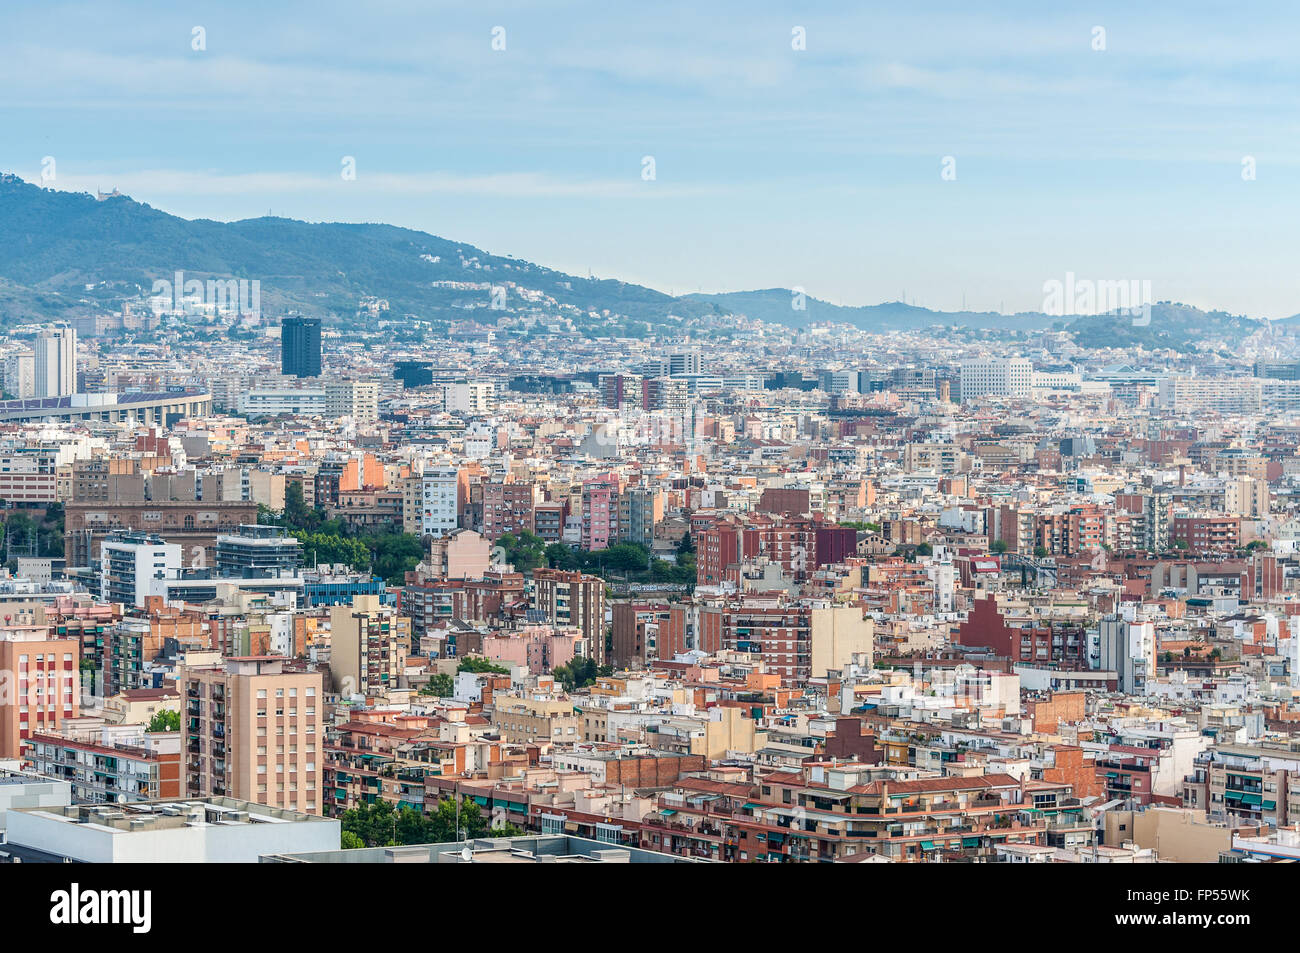 The view of Barcelona from high up in the Renaissance Barcelona Fira Hotel. - Stock Image